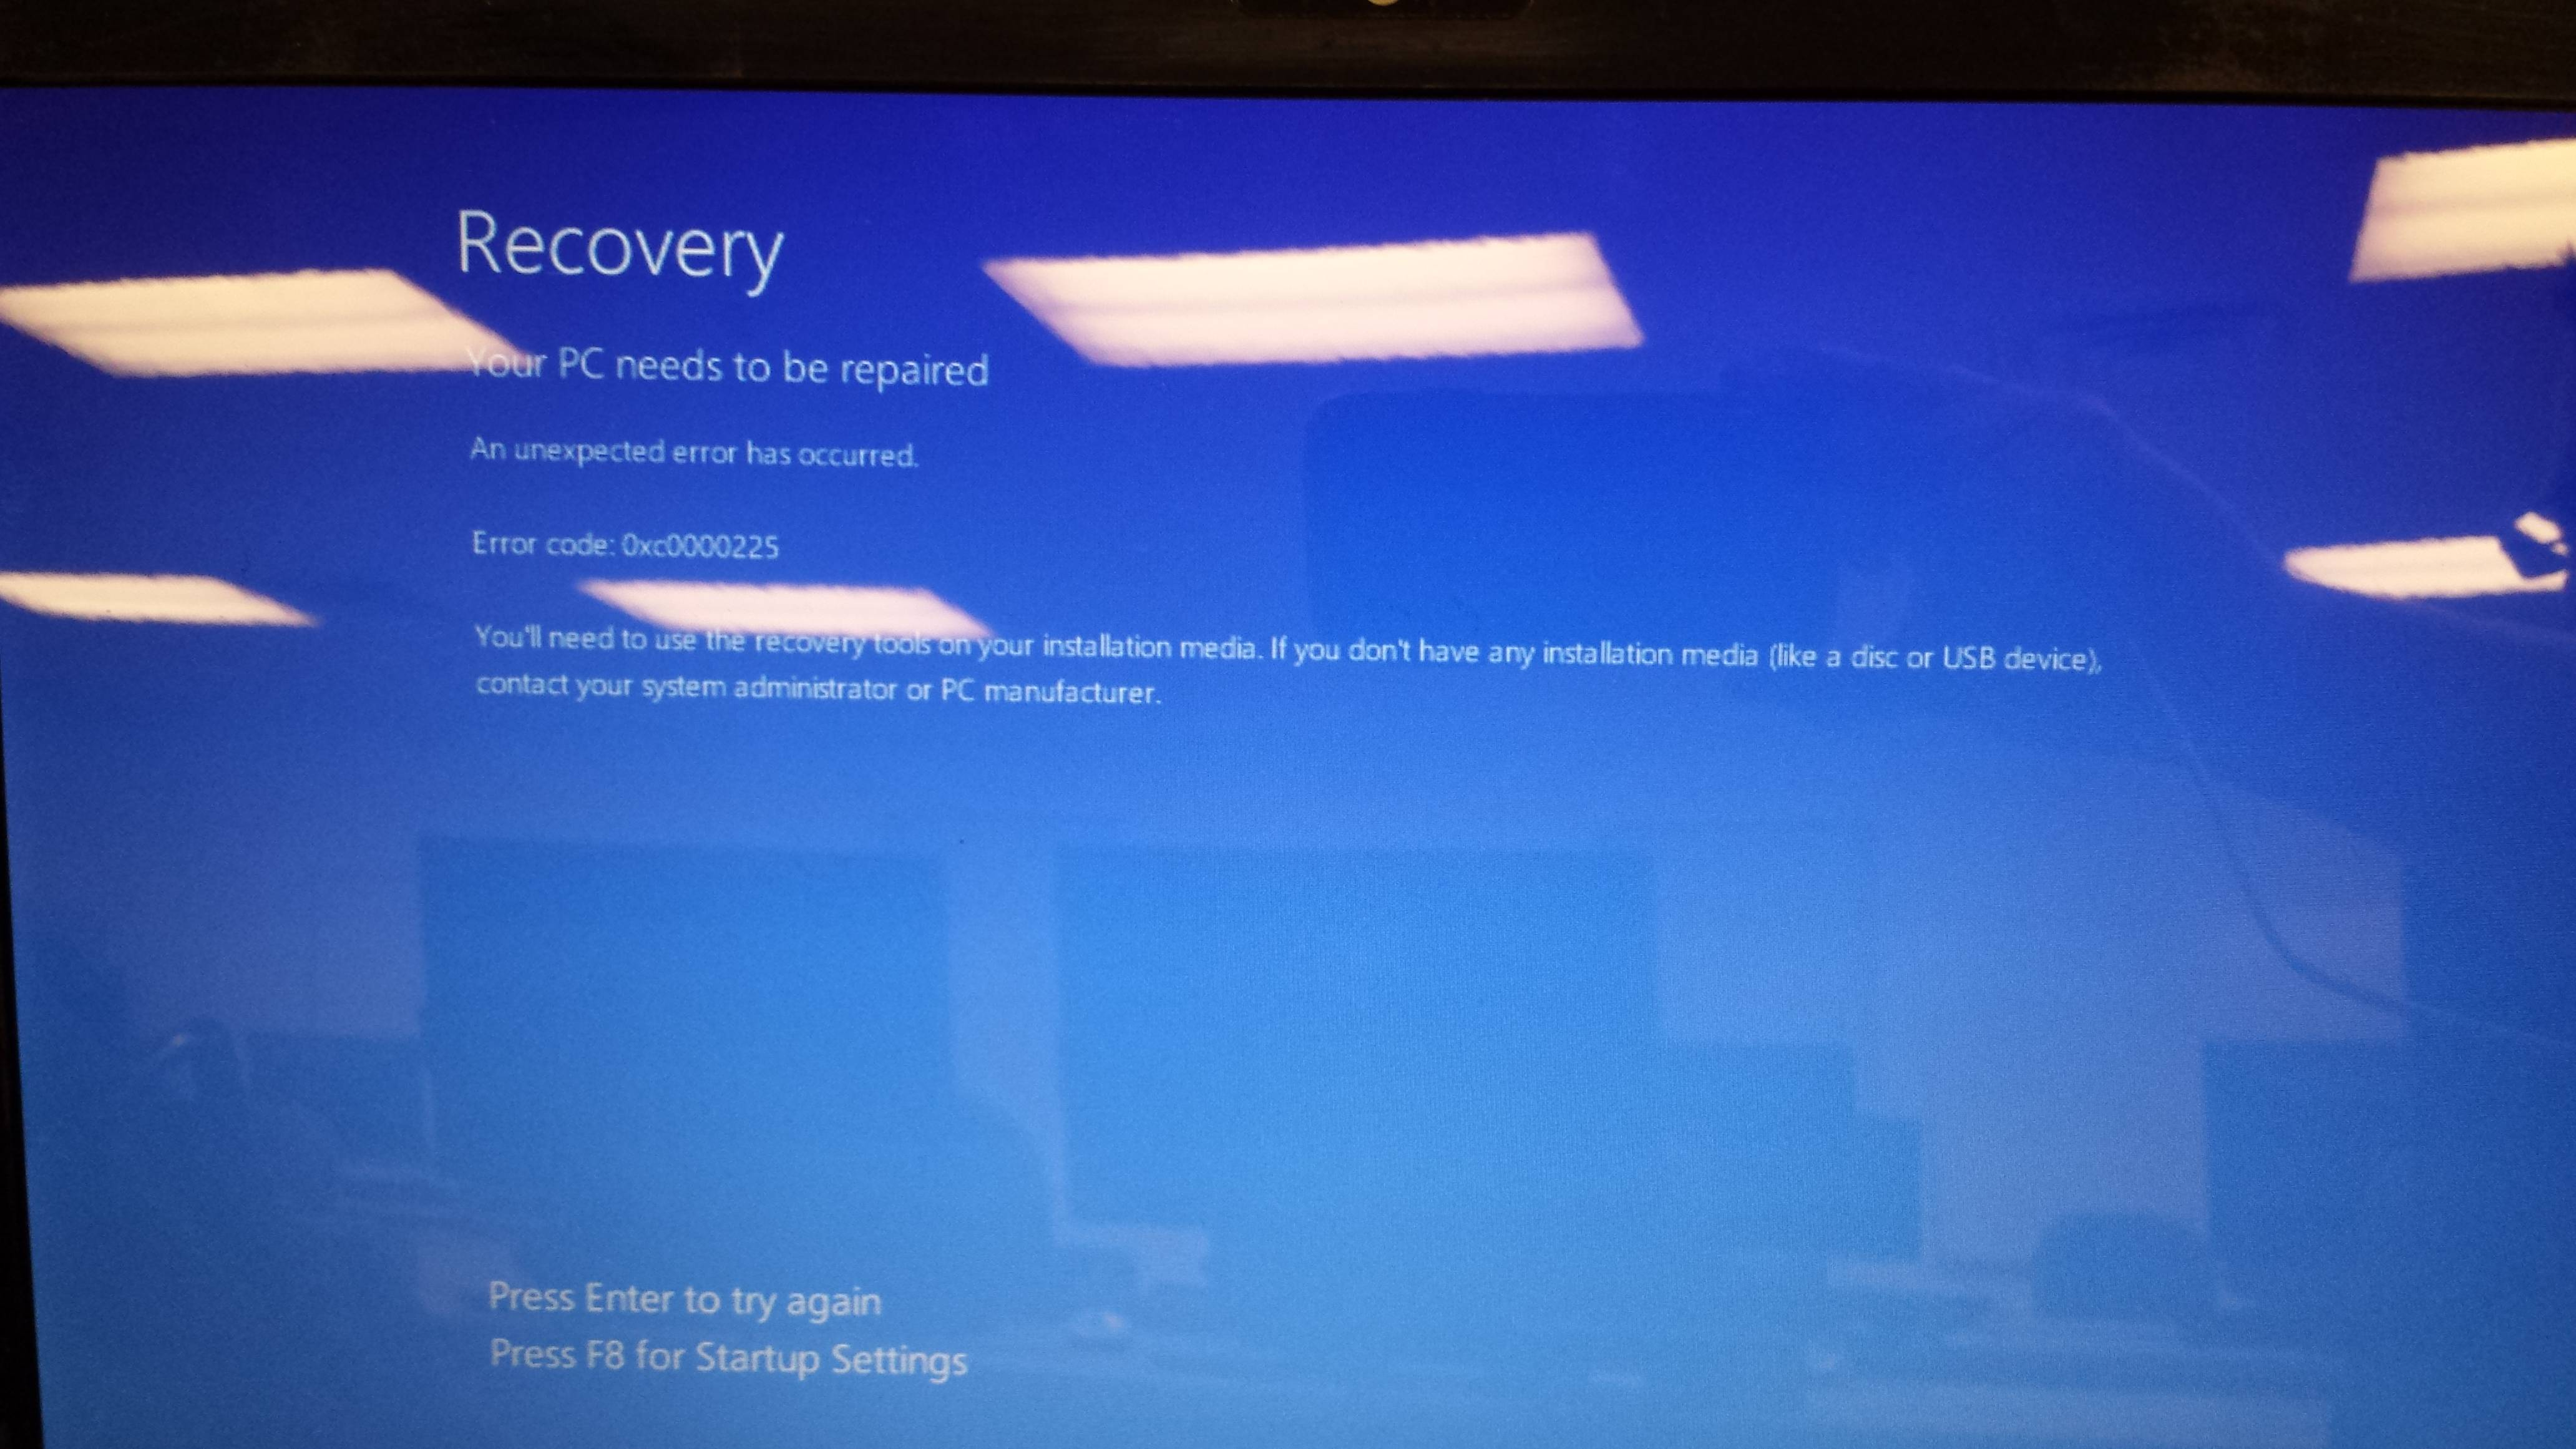 Bios Recovery - Blank Screen $$ Donation Award $$$ - HP